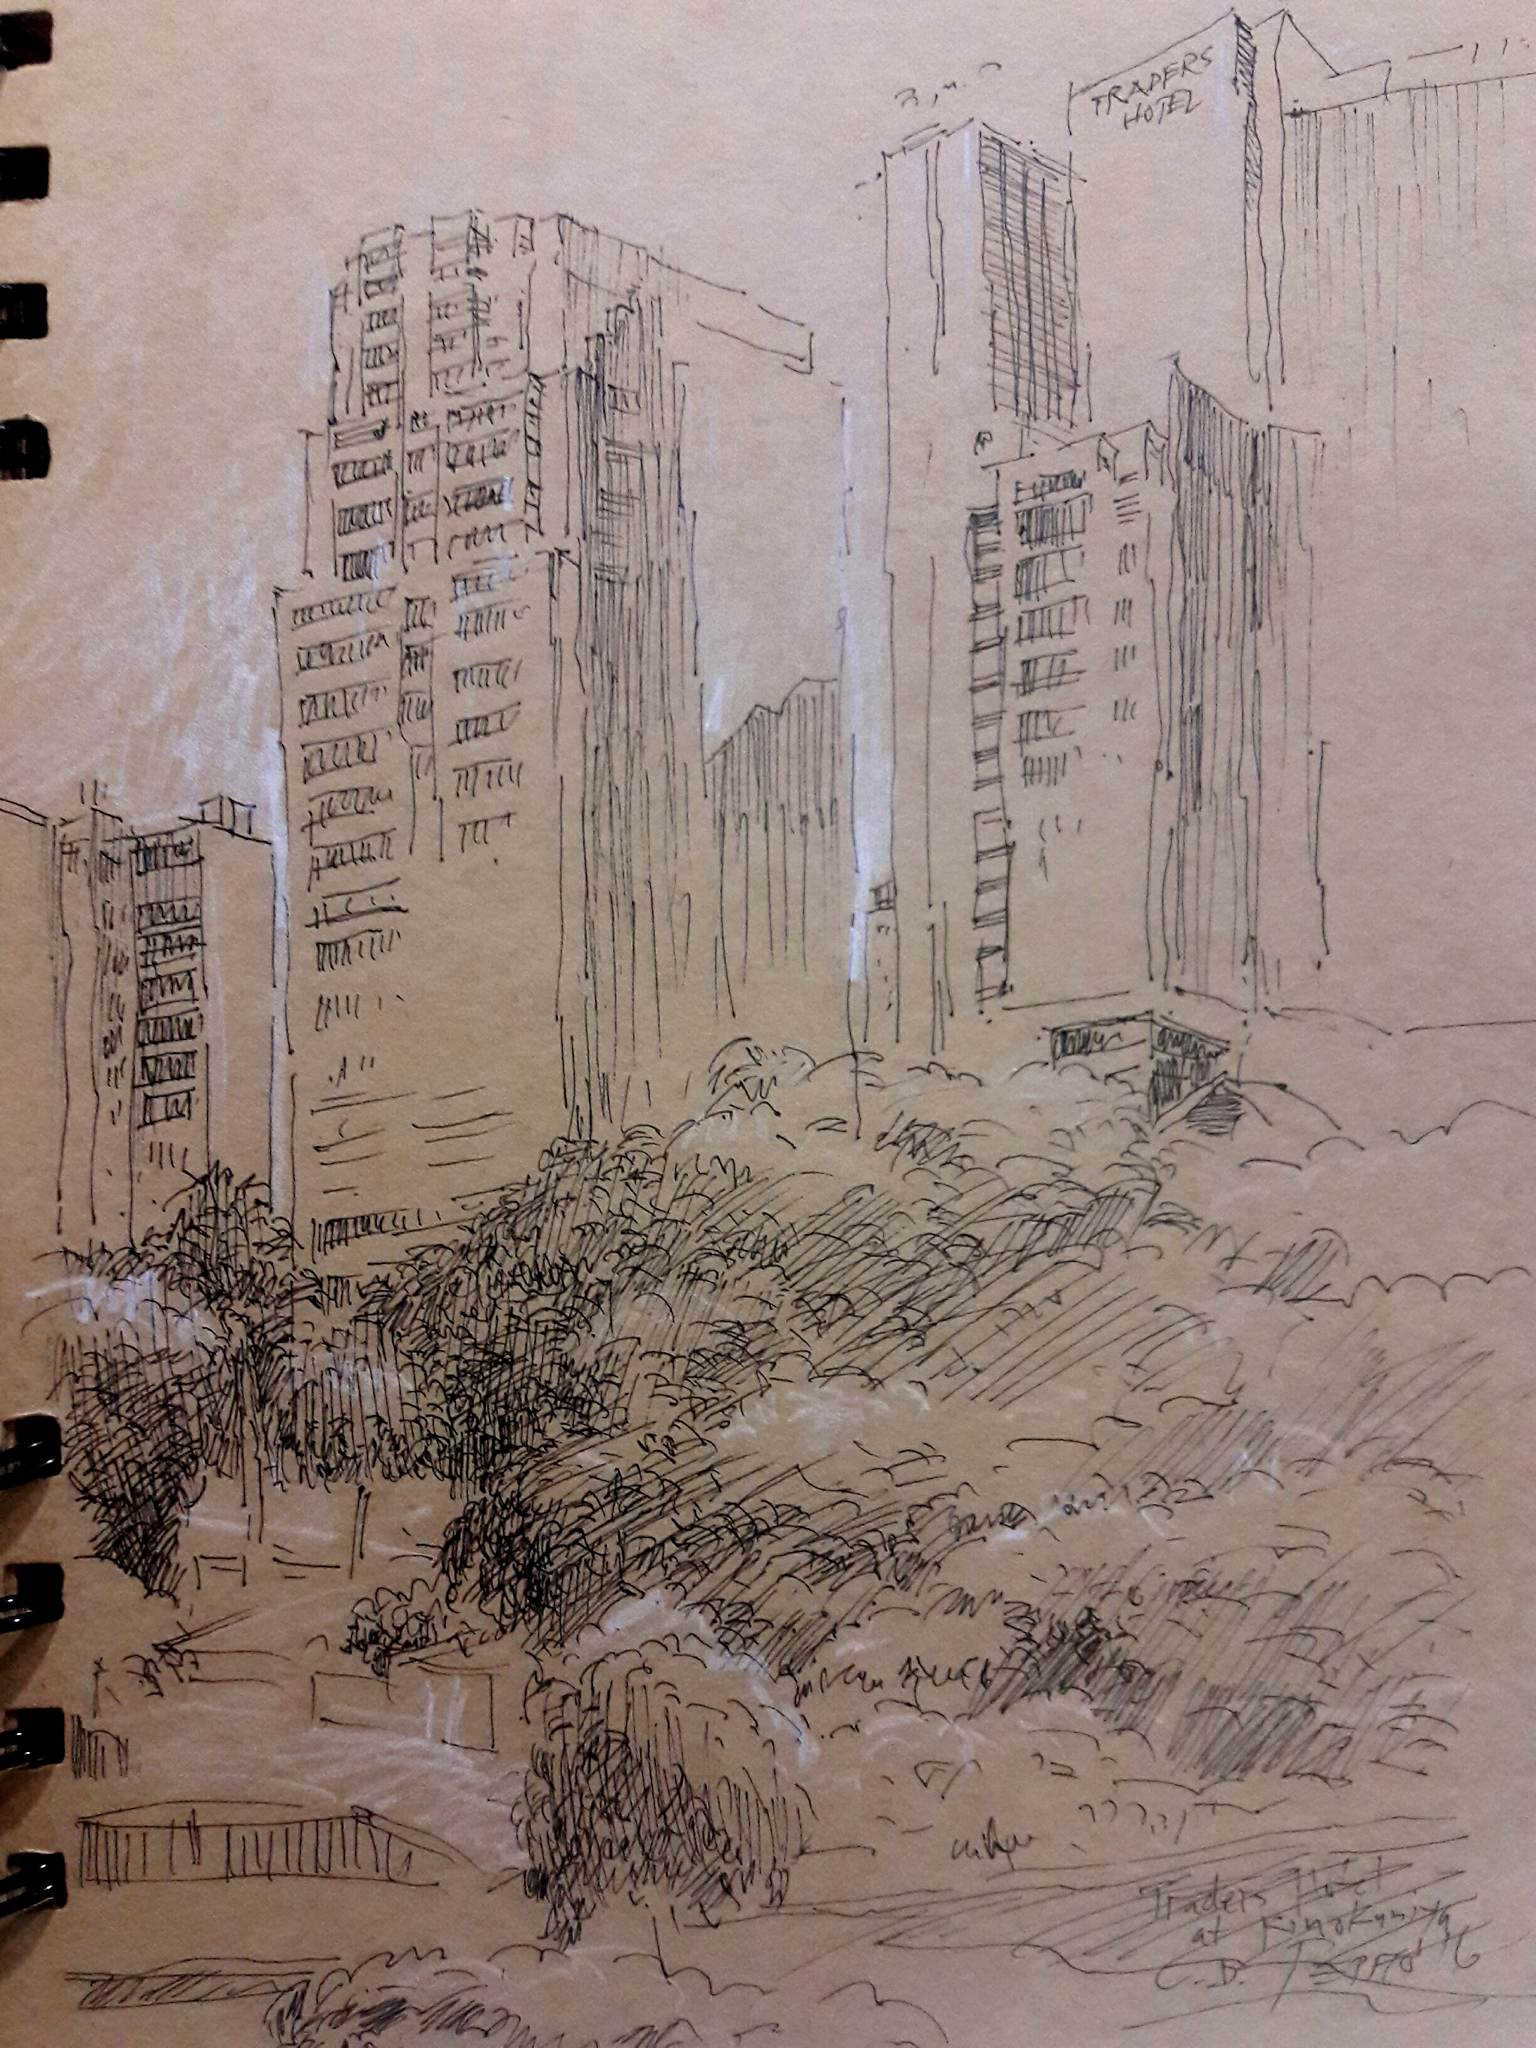 Celso Pepito's sketch of buildings viewed from the Kinokunia Bookstore